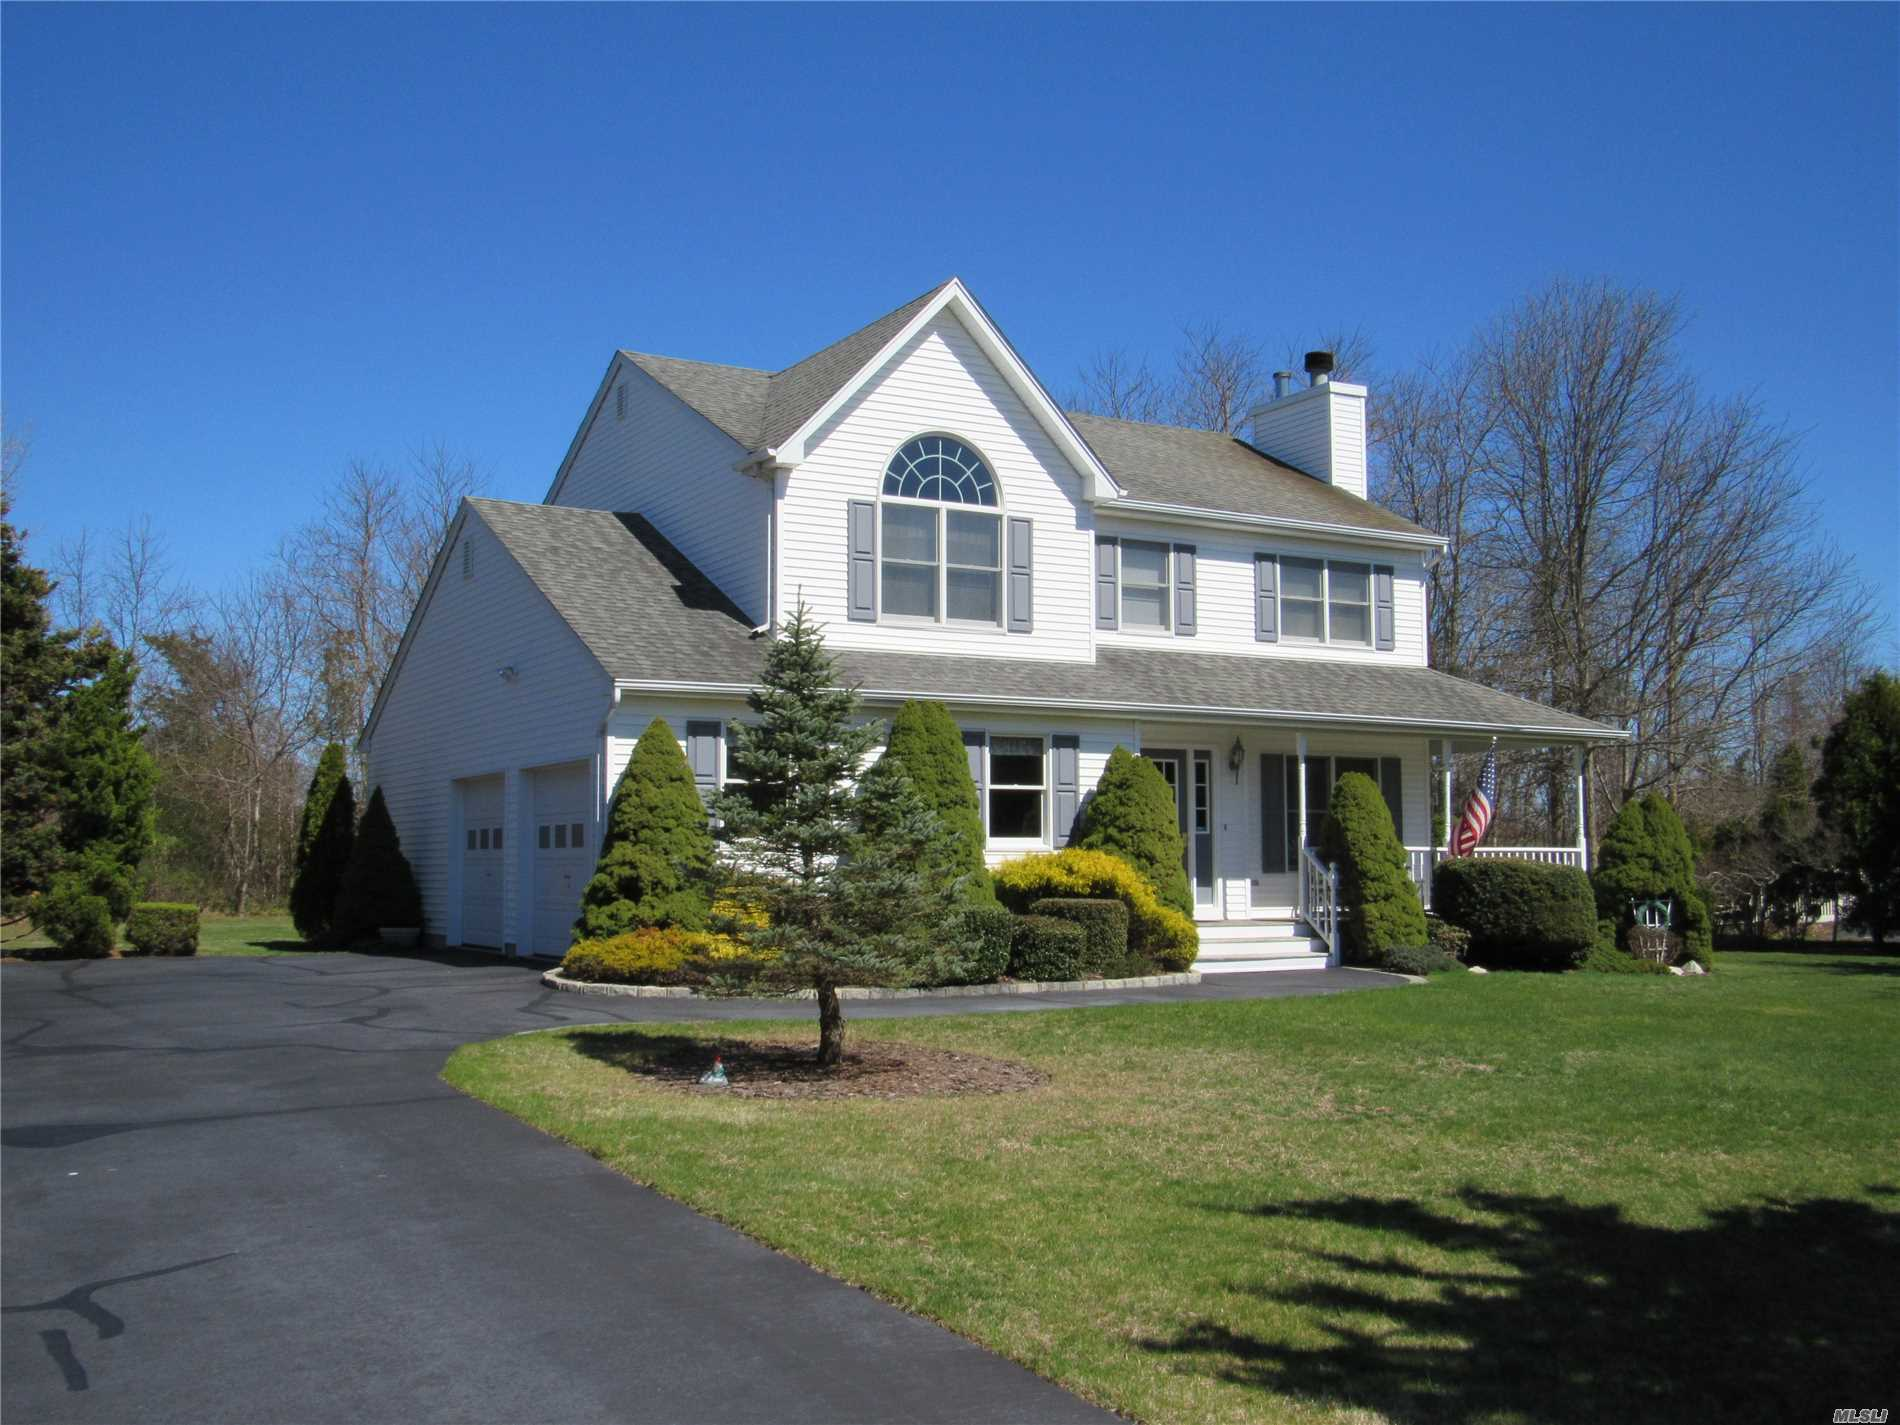 Super immaculate 4 bedroom, 2.5 bath colonial style home on 1.07 acres. Features include new oil fired heating system, central a/c, gleaming hardwood floors, wrap around porch, fireplace, walk in closet. This home is spotless.